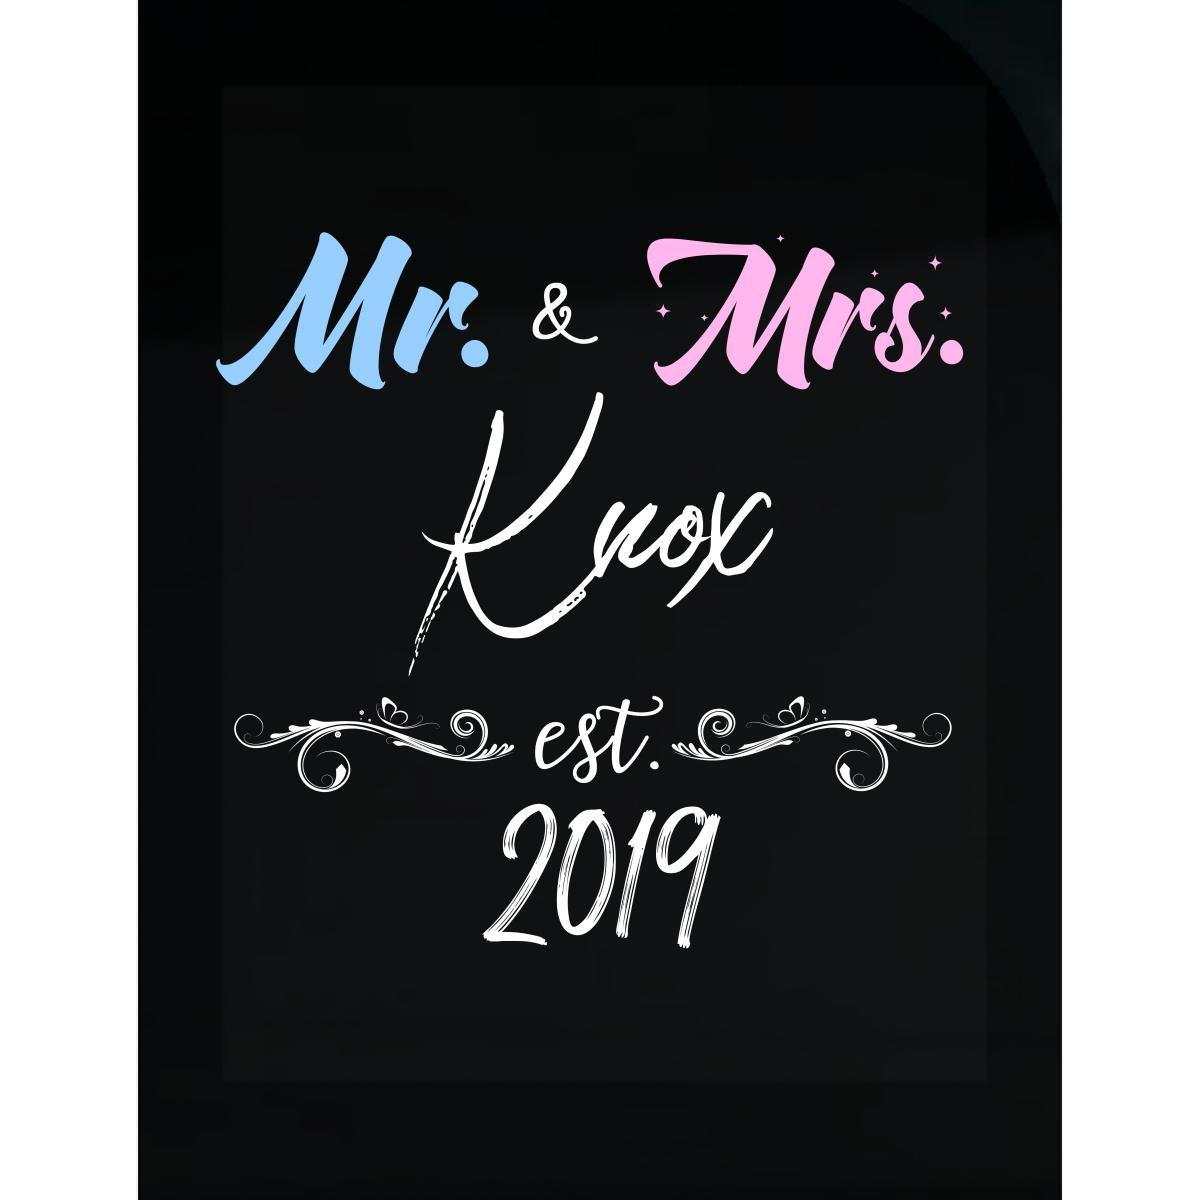 Amazon com my family tee mr and mrs knox est 2019 last name wedding year sticker home kitchen